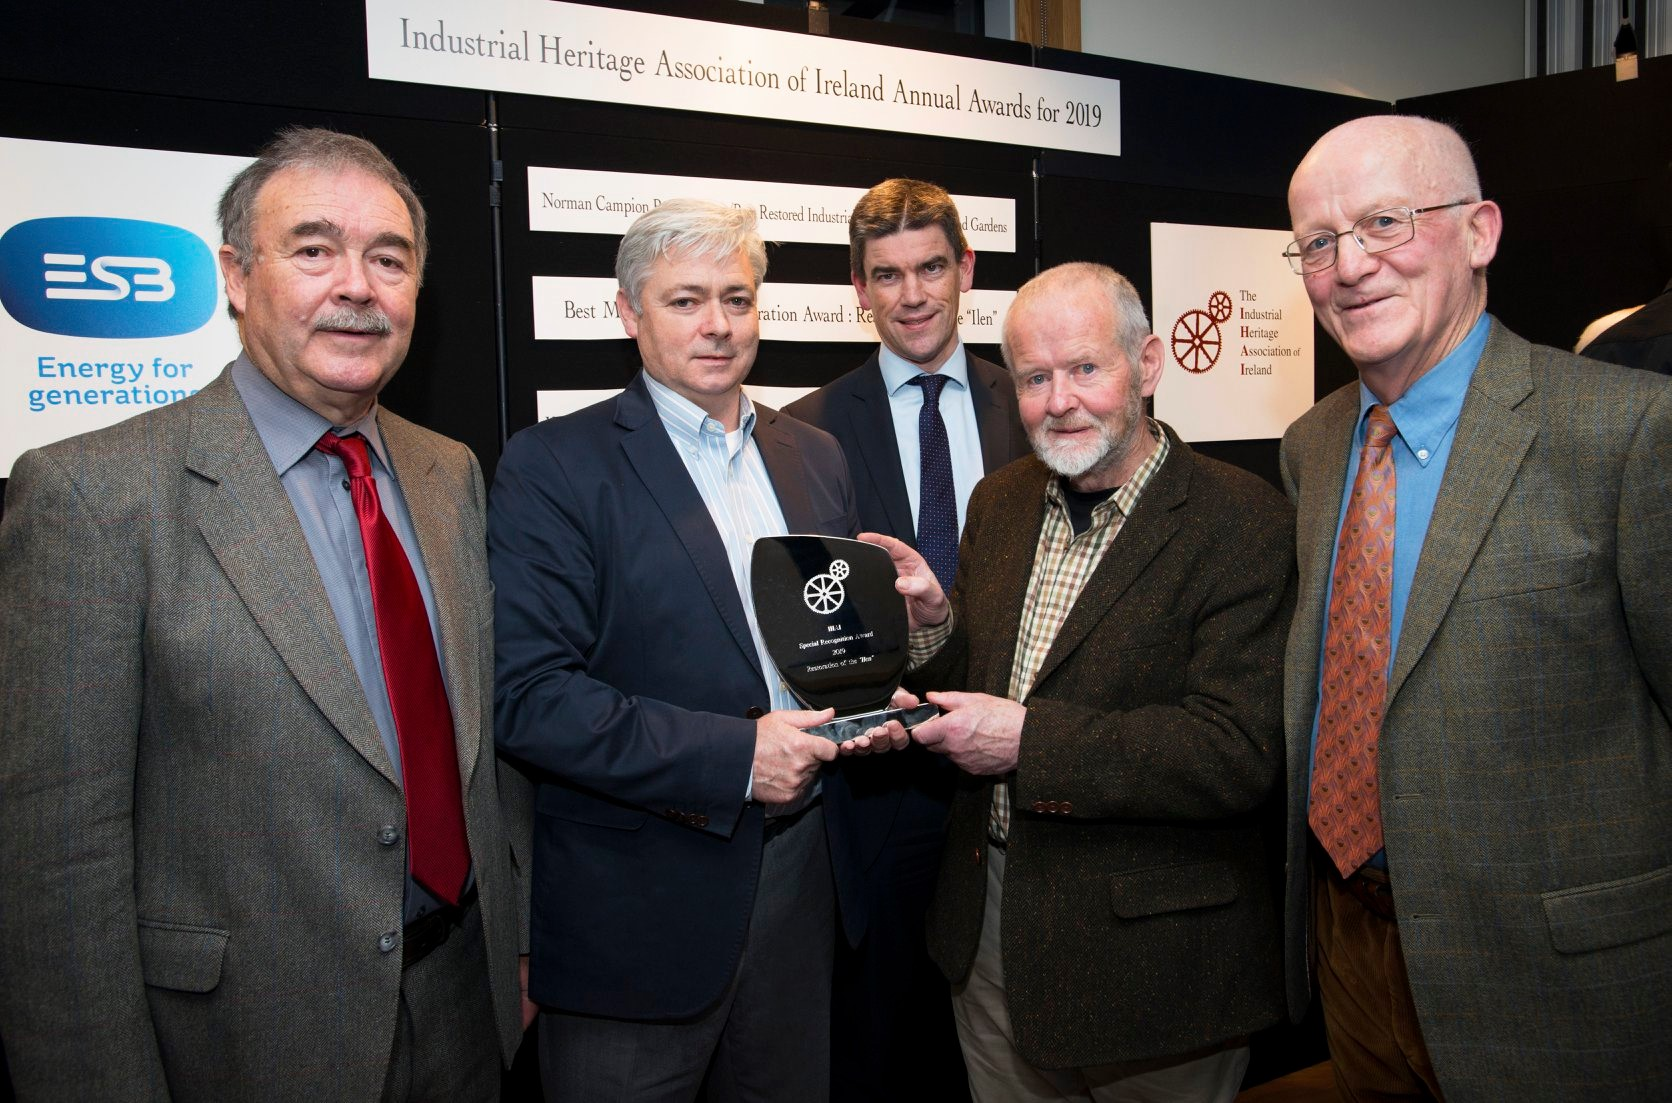 Heritage award for Ilen restoration project